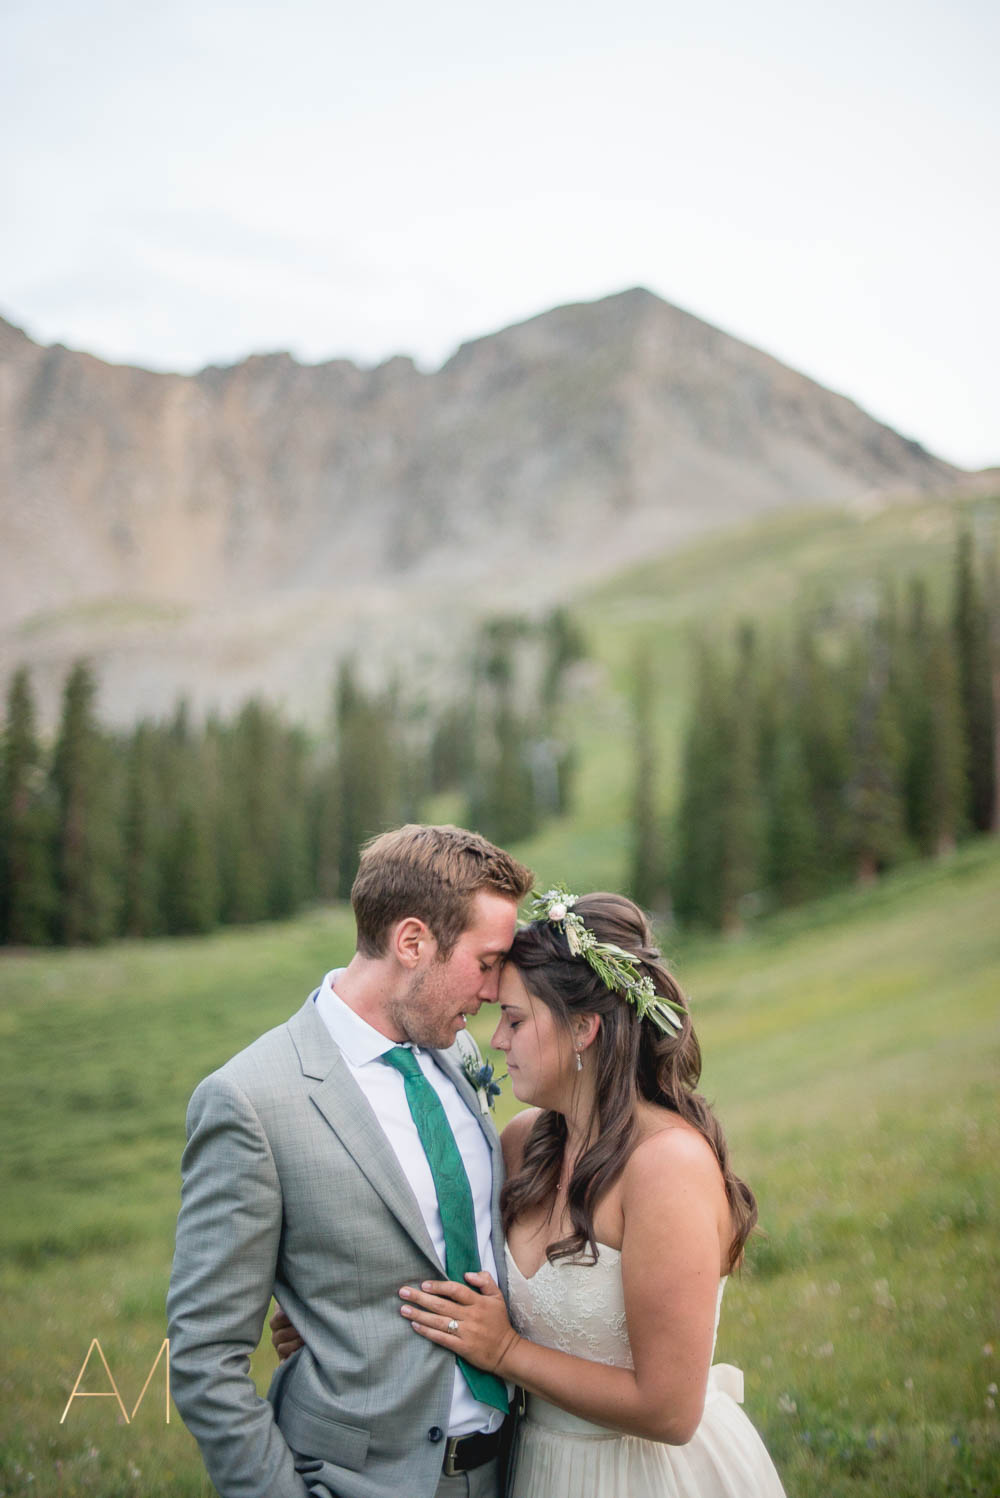 AshleighMillerWeddings-MadeleineAaron-Wedding-ArapahoeBasin-Colorado-5080.jpg